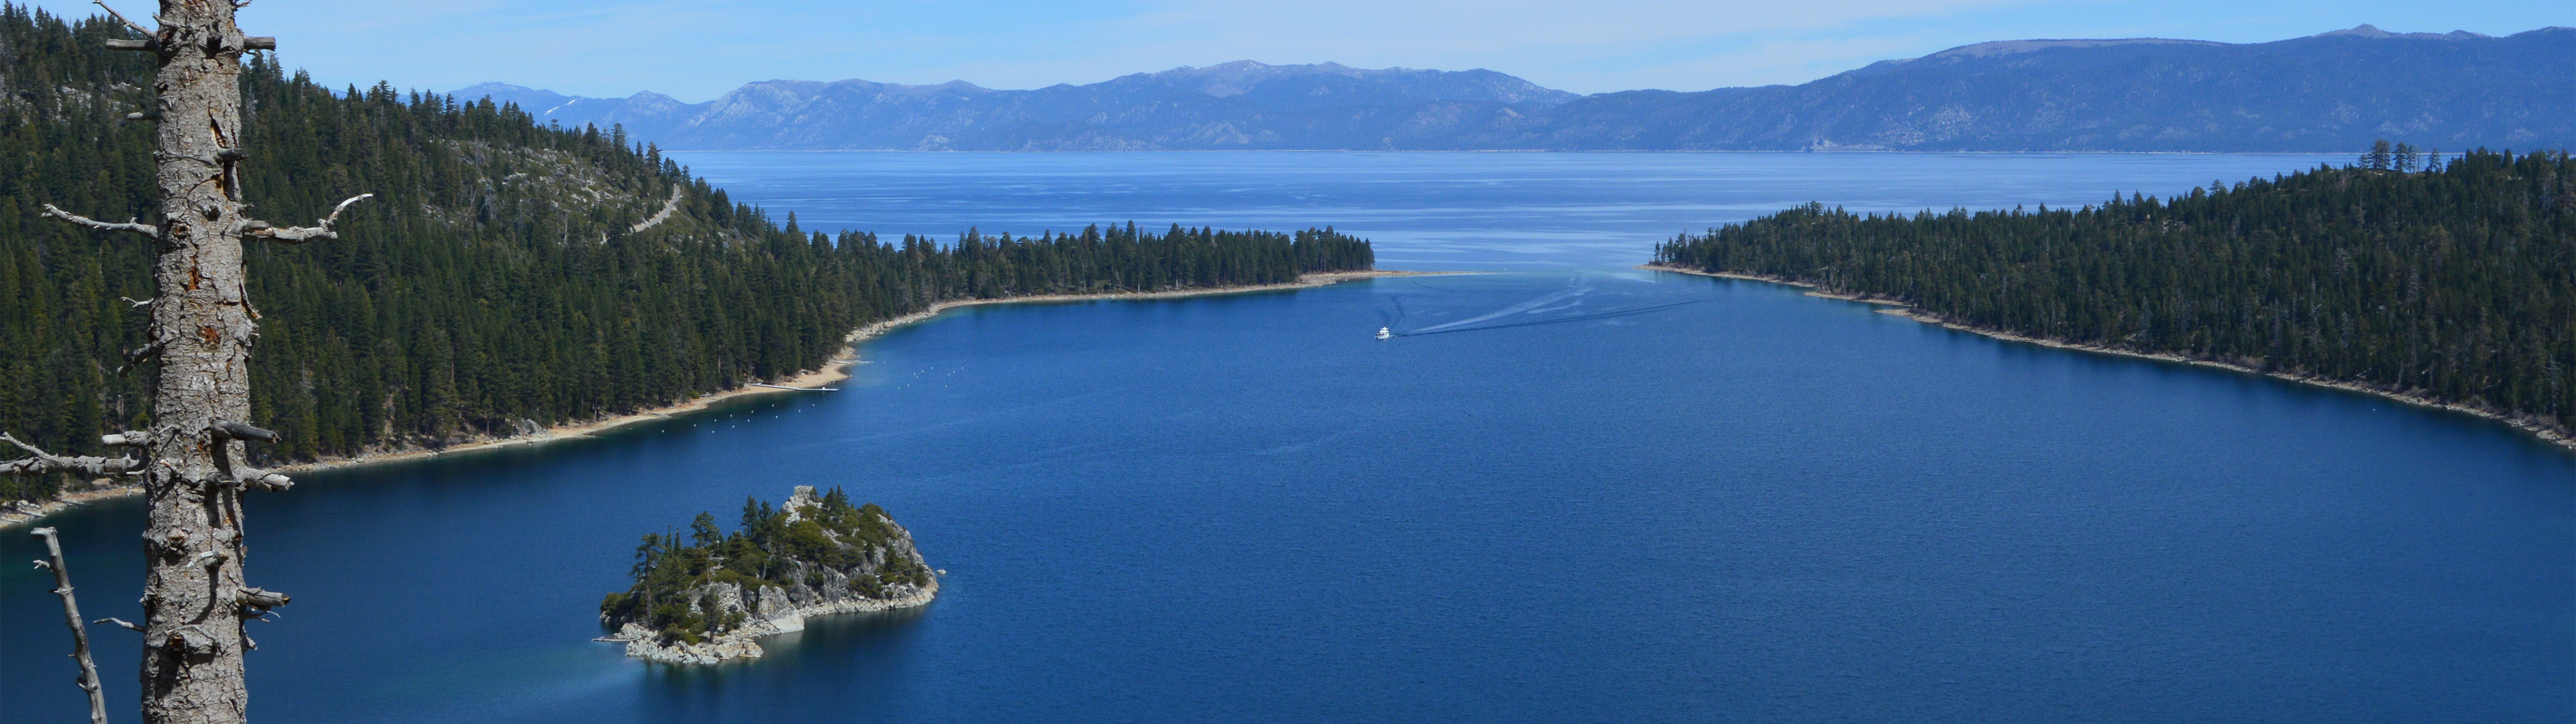 lake tahoe chat sites The lake tahoe historical society (lths), celebrating 50 years in south lake tahoe, will hold their monthly fireside chat on this topic on tuesday.